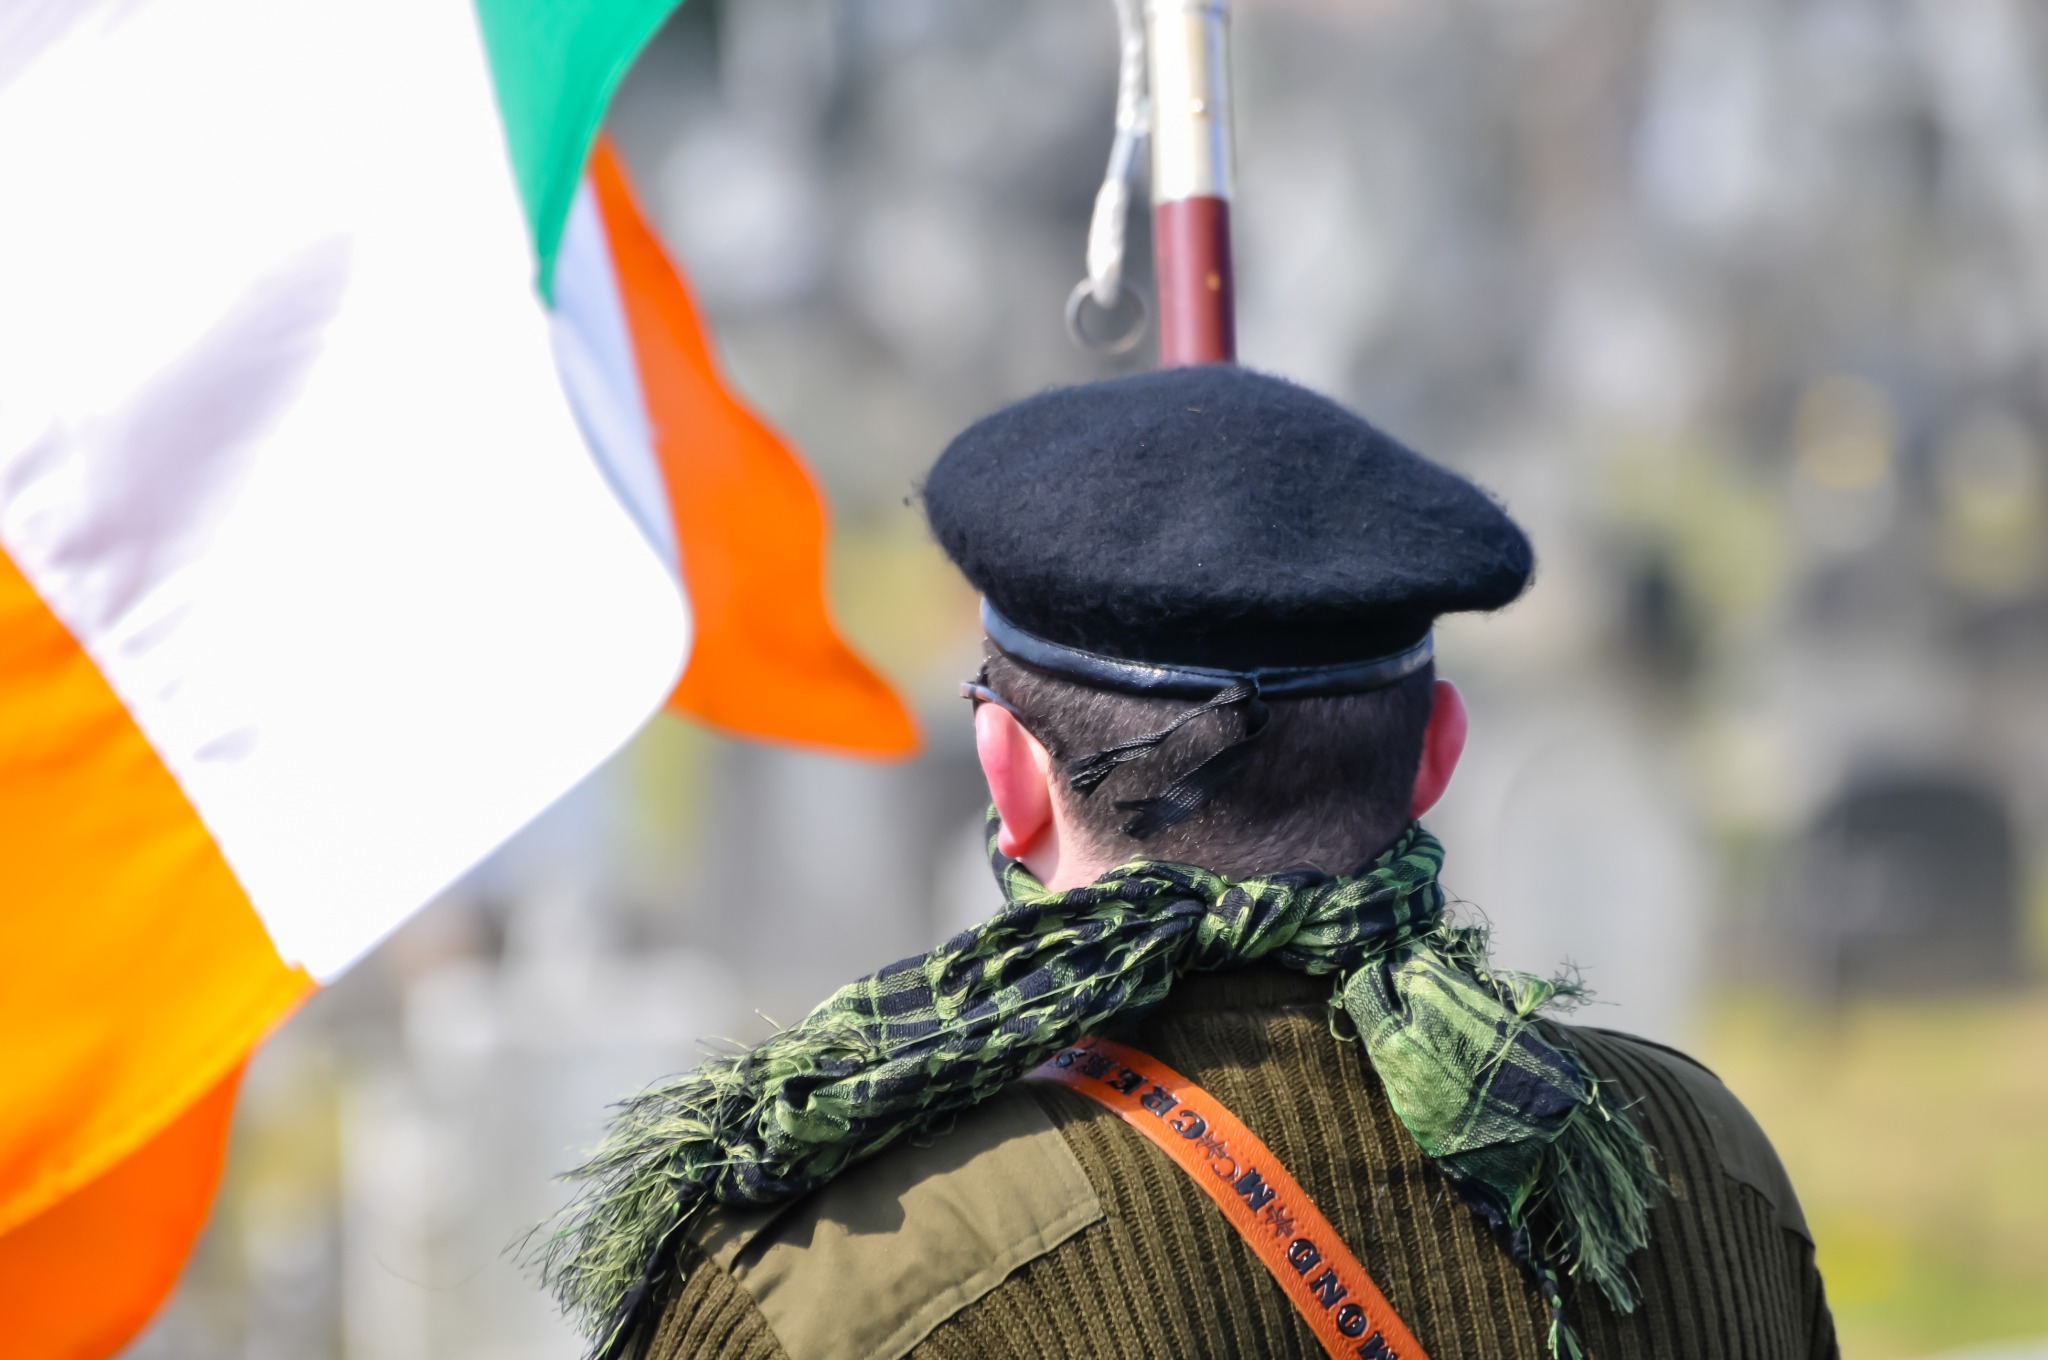 A man waving the Irish flag to commemorate the Easter rising of 1916